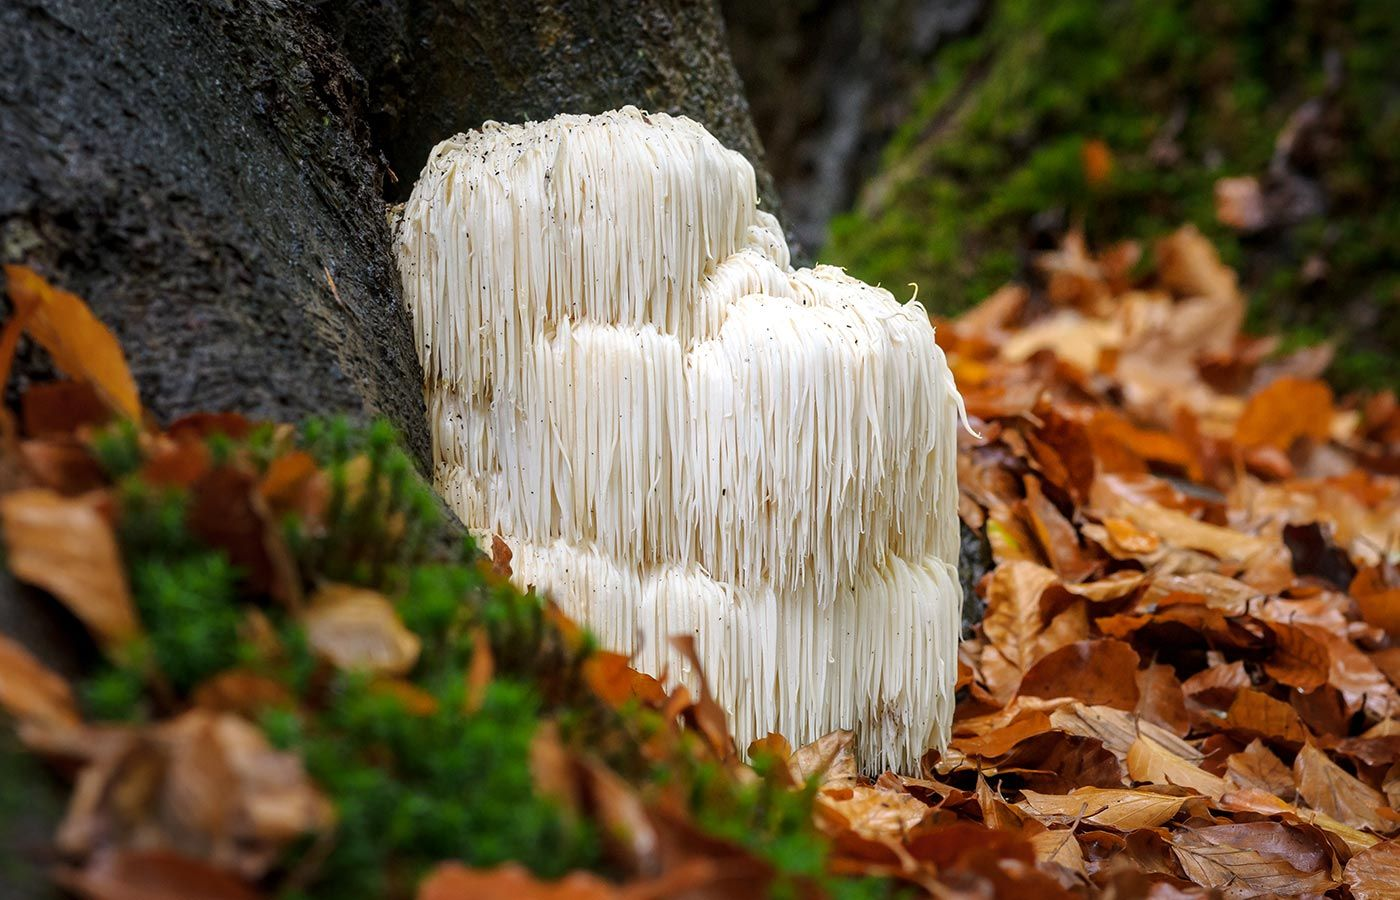 Lion's mane is a culinary and medicinal mushroom. In China